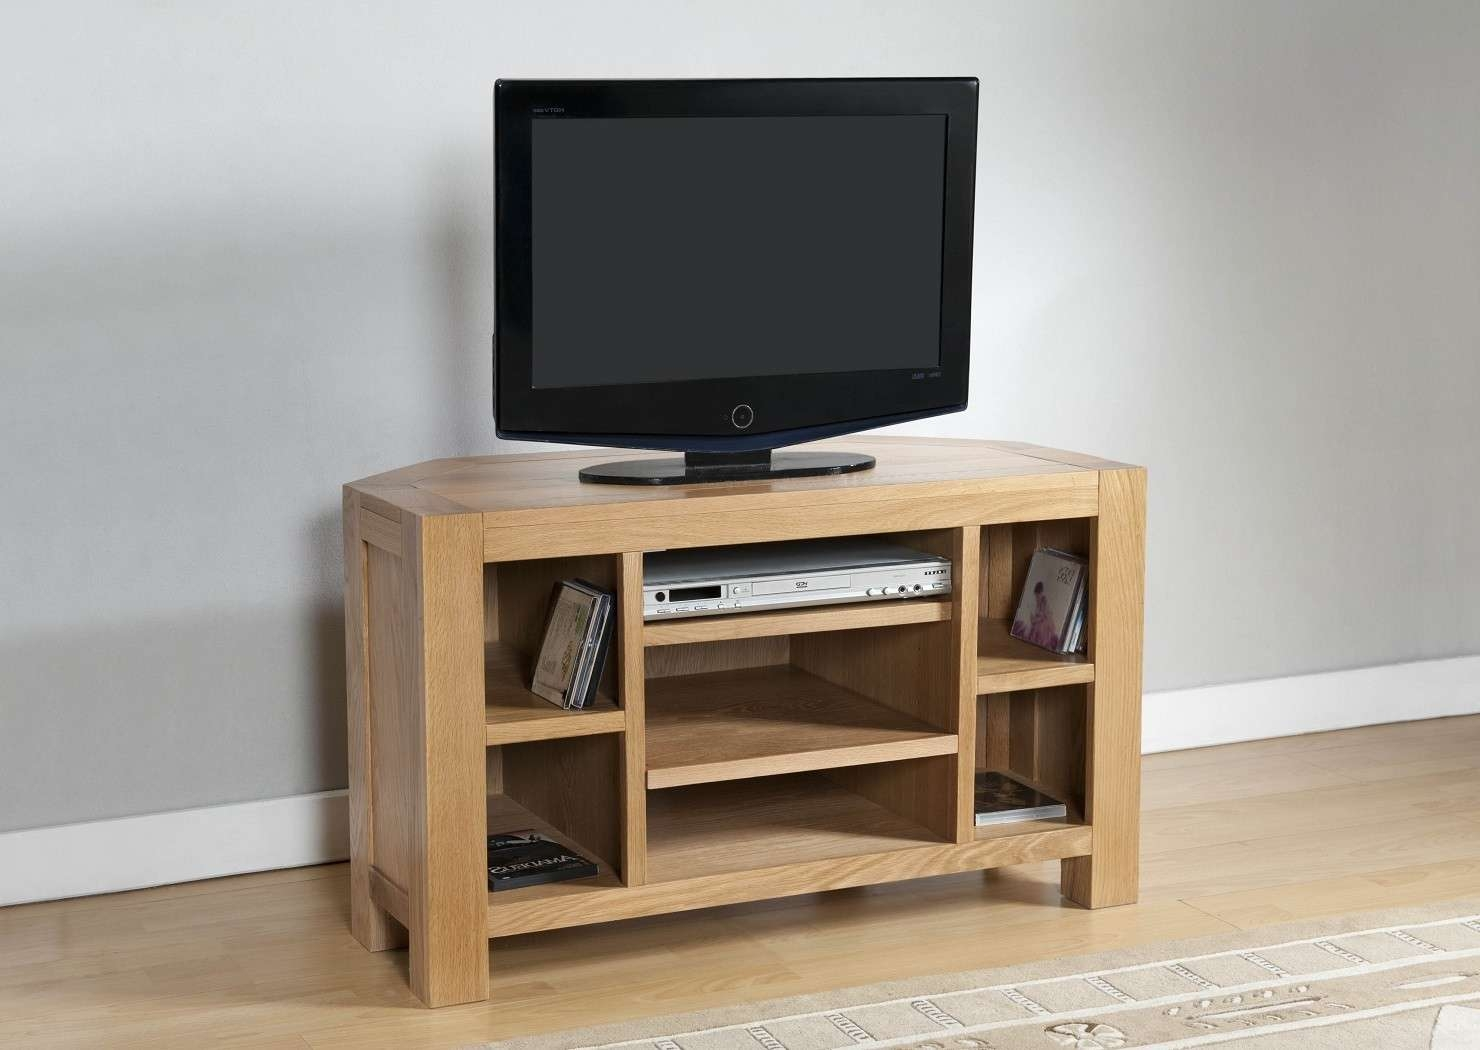 Aylesbury Contemporary Light Oak Corner Tv Unit | Oak Furniture Uk For Light Oak Corner Tv Cabinets (View 1 of 20)